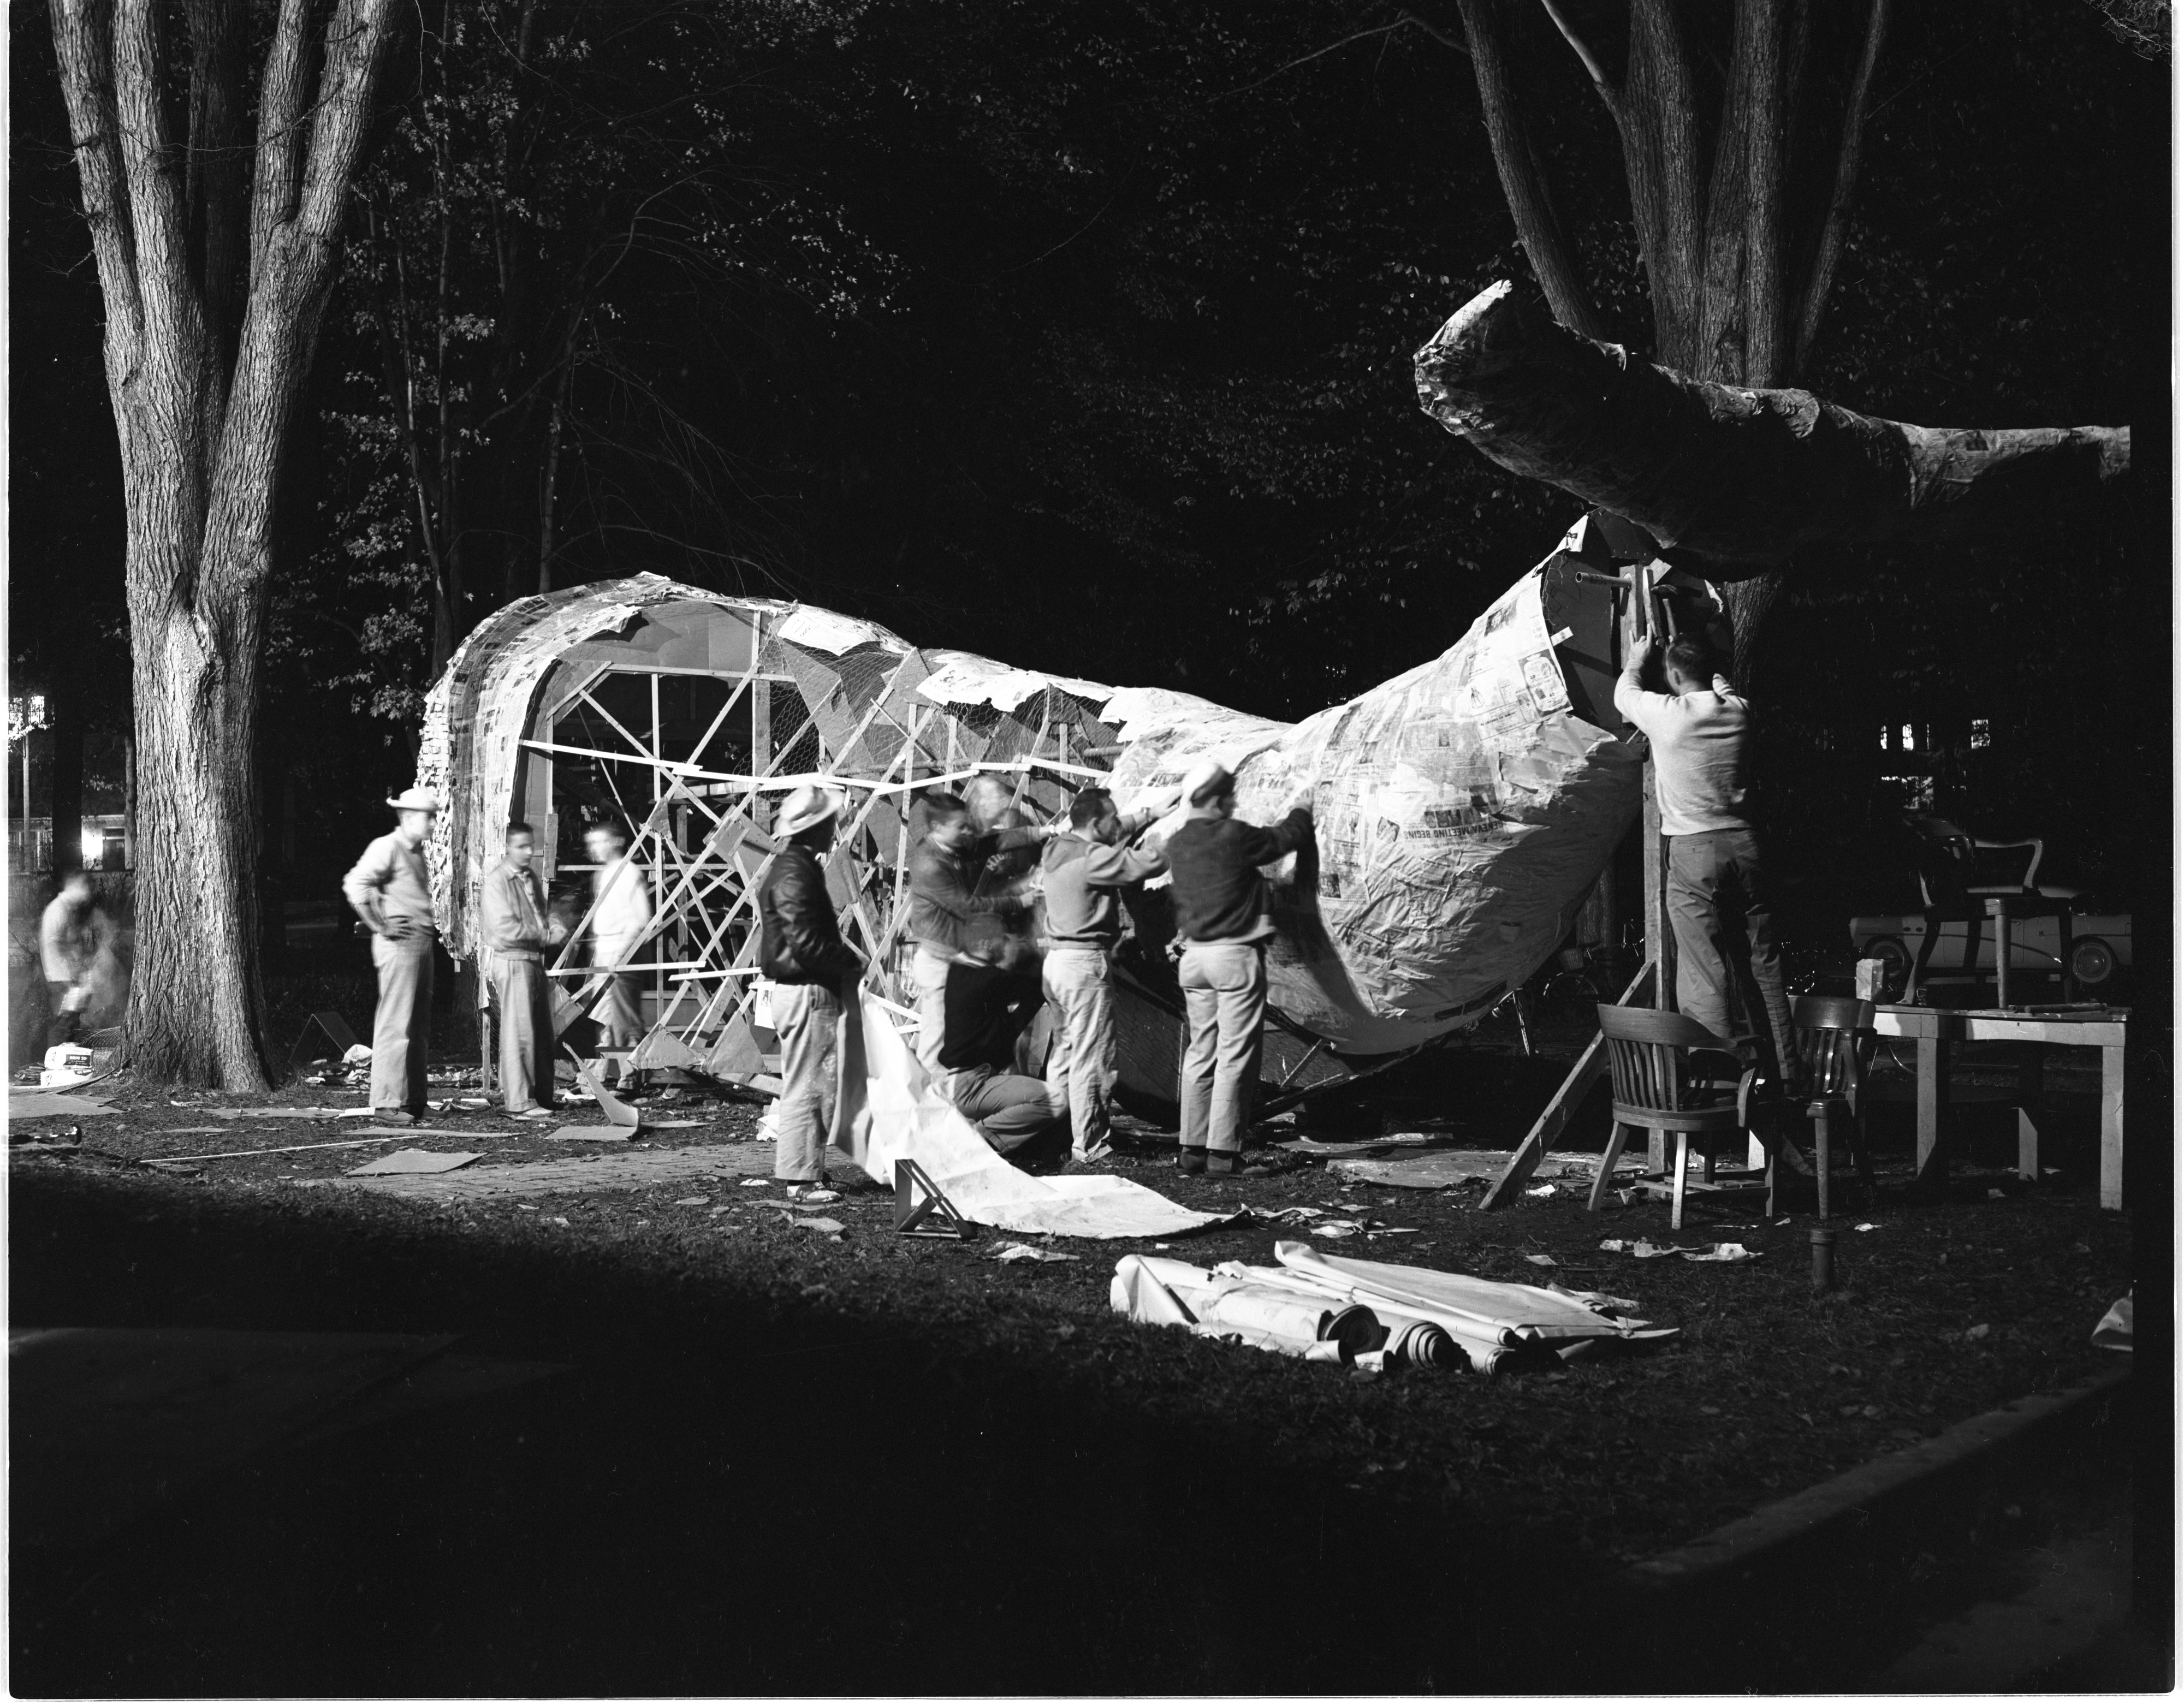 Alpha Sigma Phi Fraternity Brothers Construct Their Homecoming Display, October 1955 image